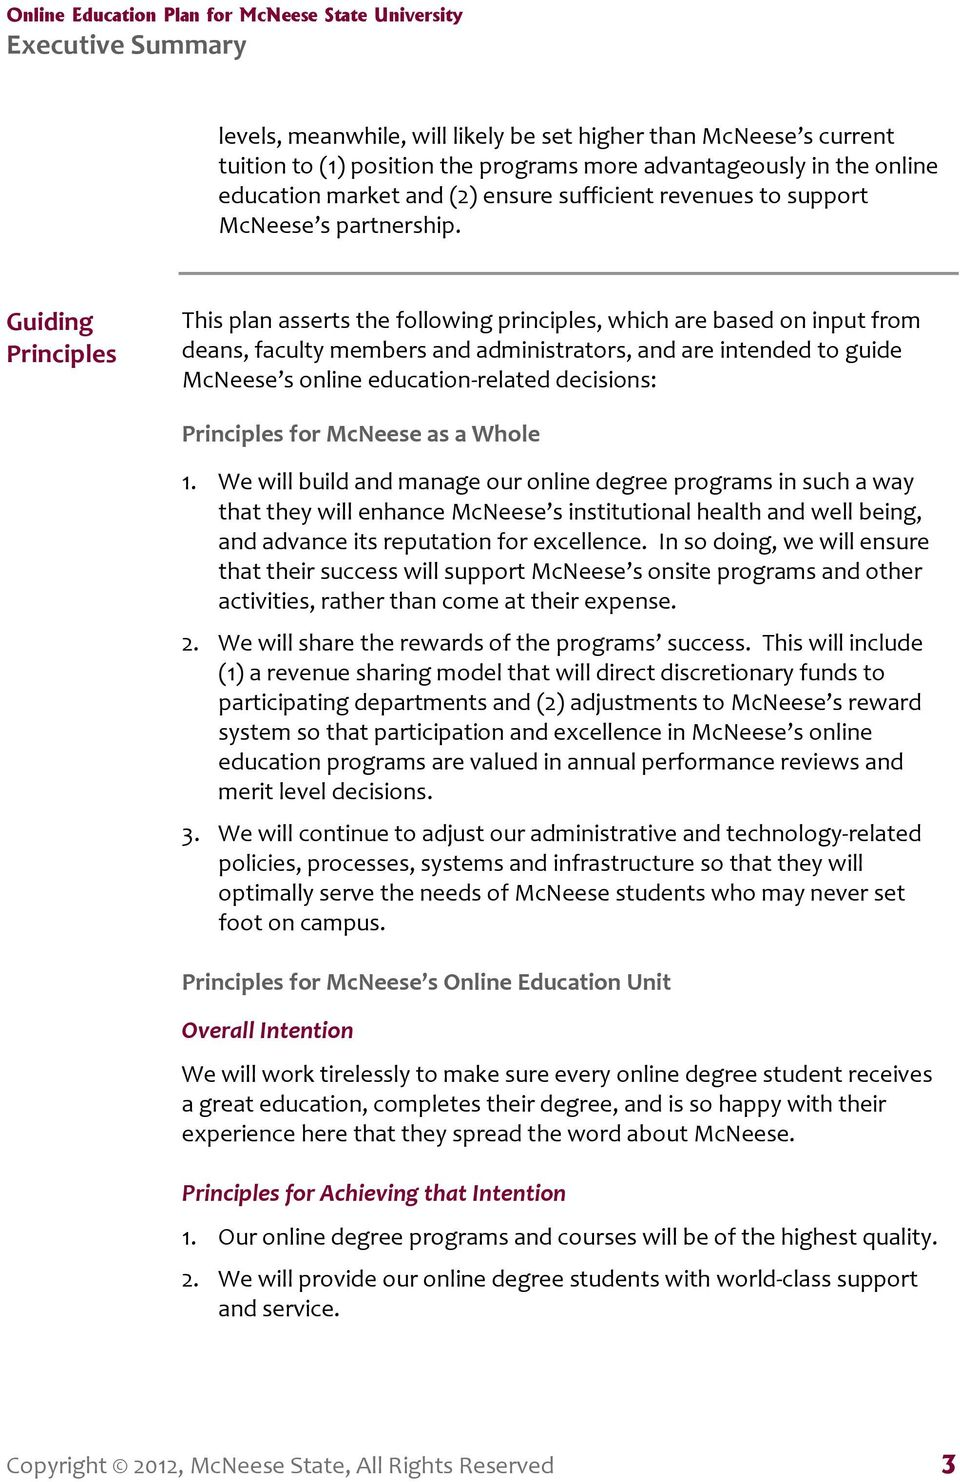 Guiding Principles This plan asserts the following principles, which are based on input from deans, faculty members and administrators, and are intended to guide McNeese s online education-related